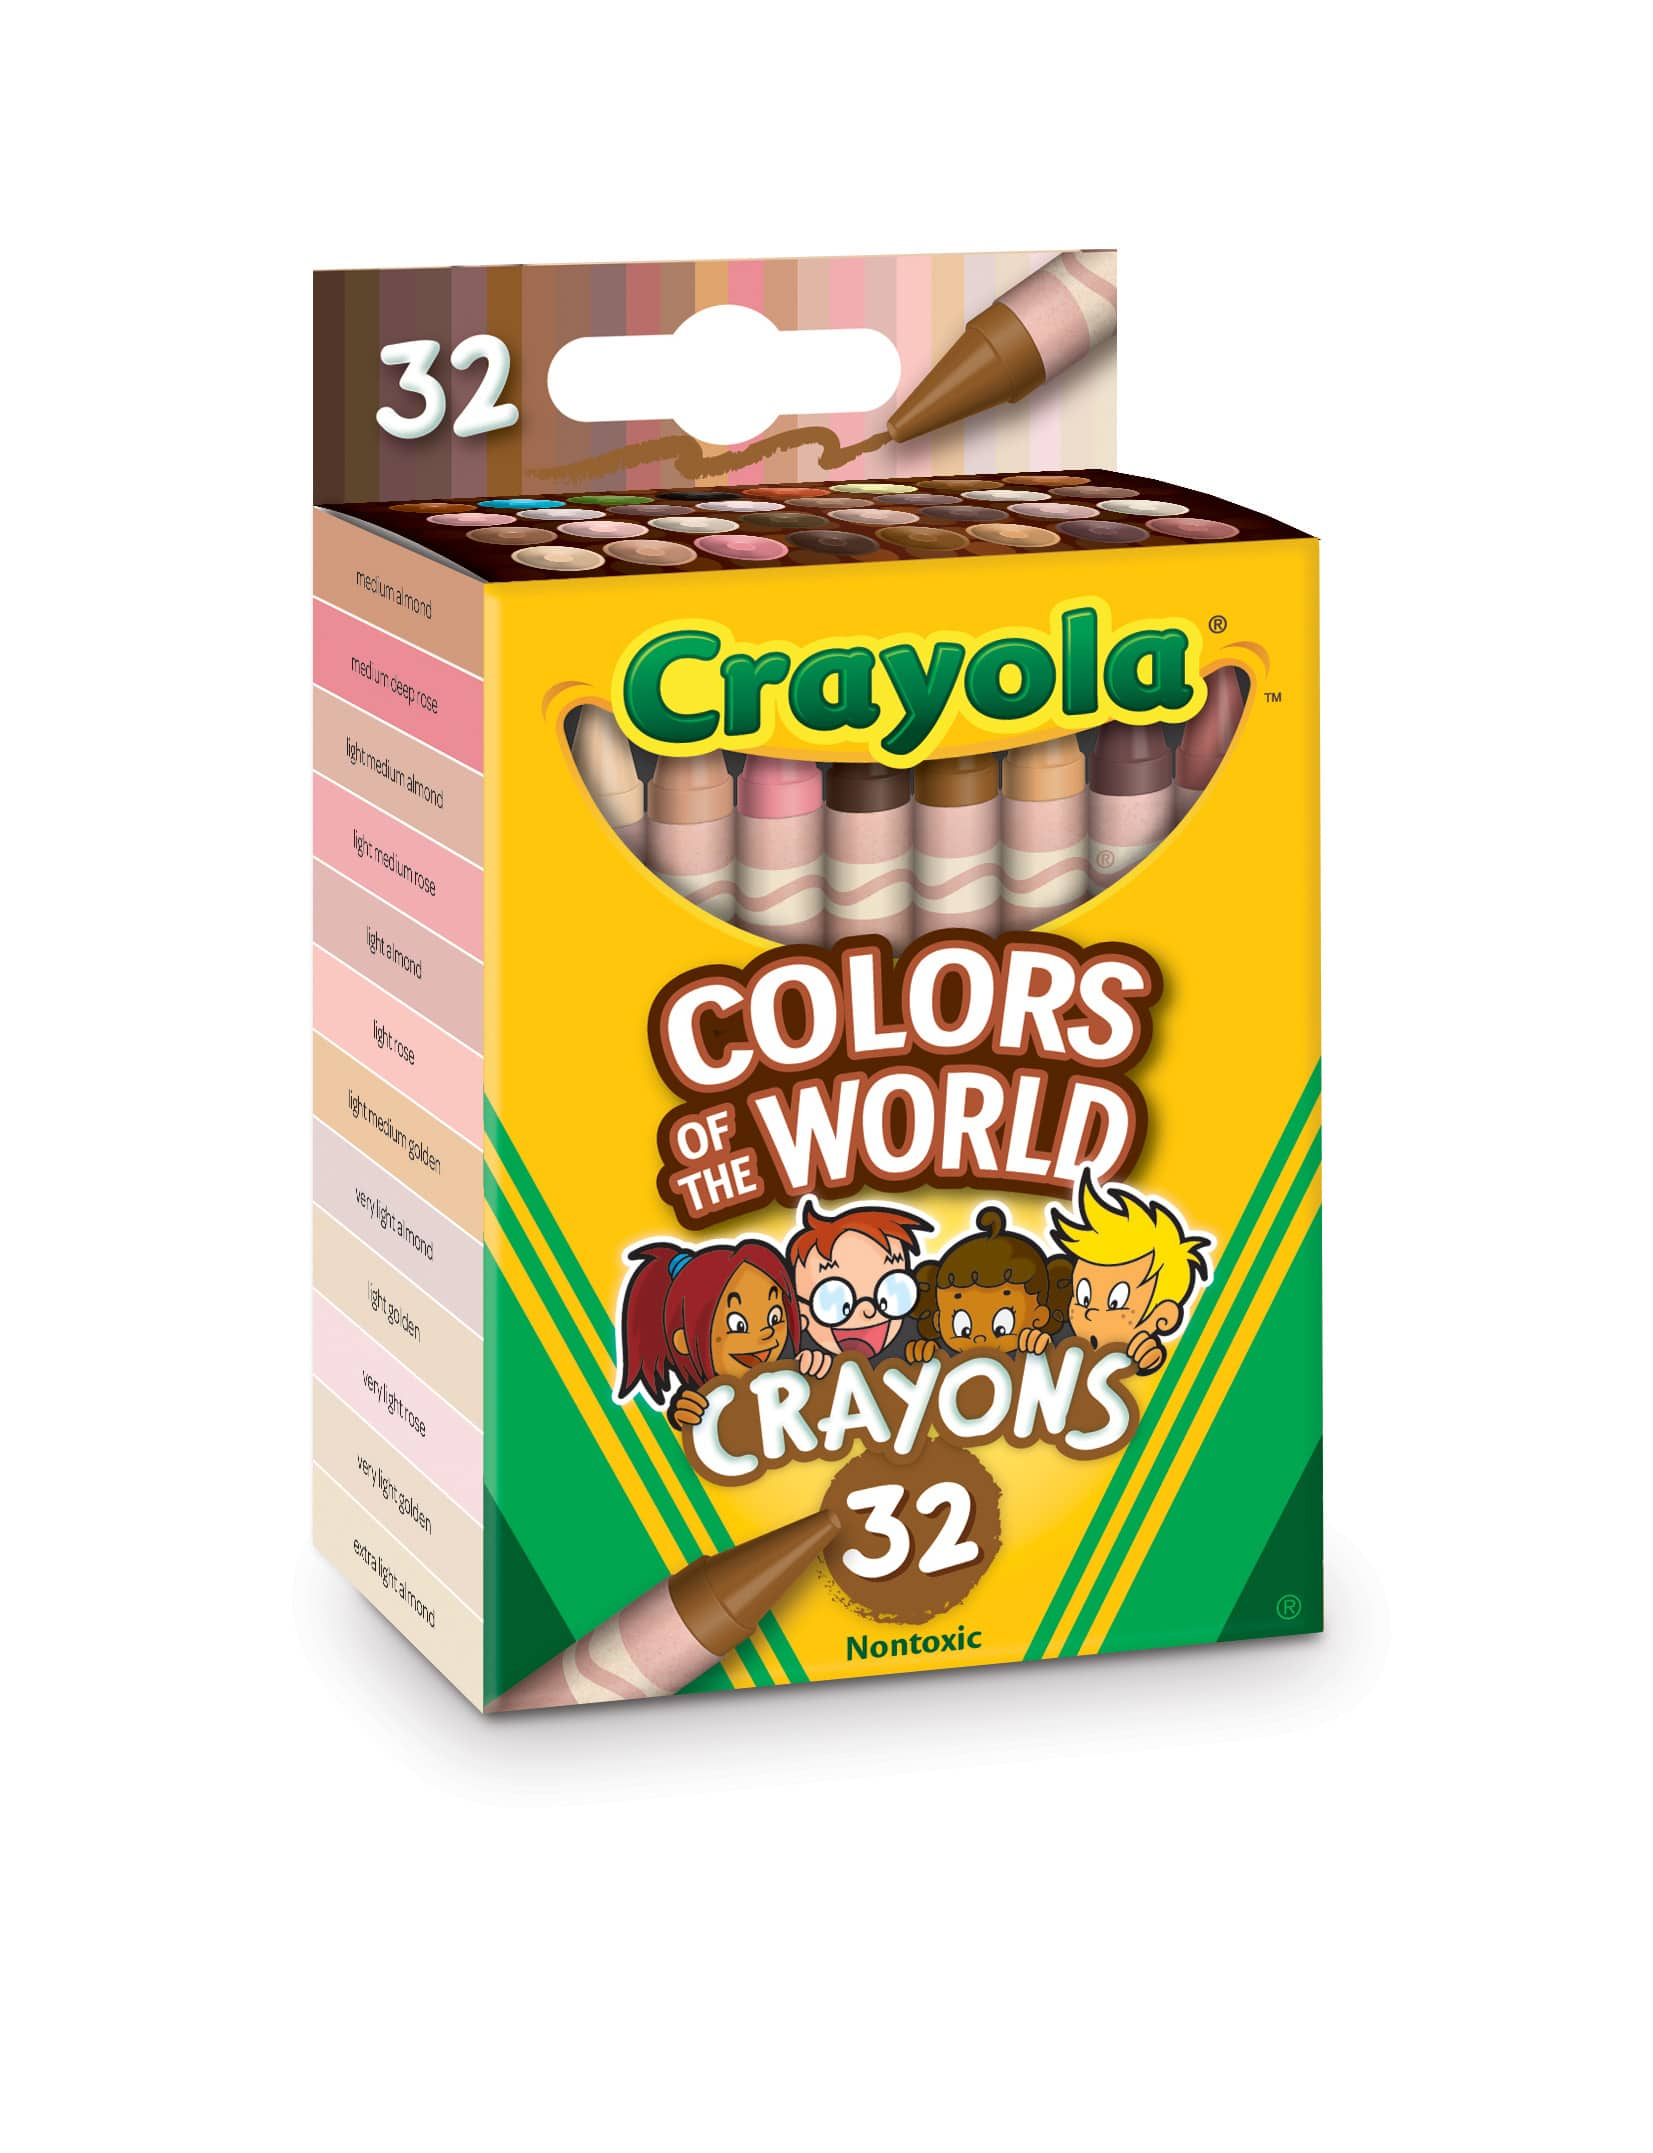 48-Pages Crayola Colors of the World Coloring Book 2 for $2 ($1 each), 32-Pack Crayola Colors of the World Crayons 2 for $3.54 ($1.77 each) + FS on $35+